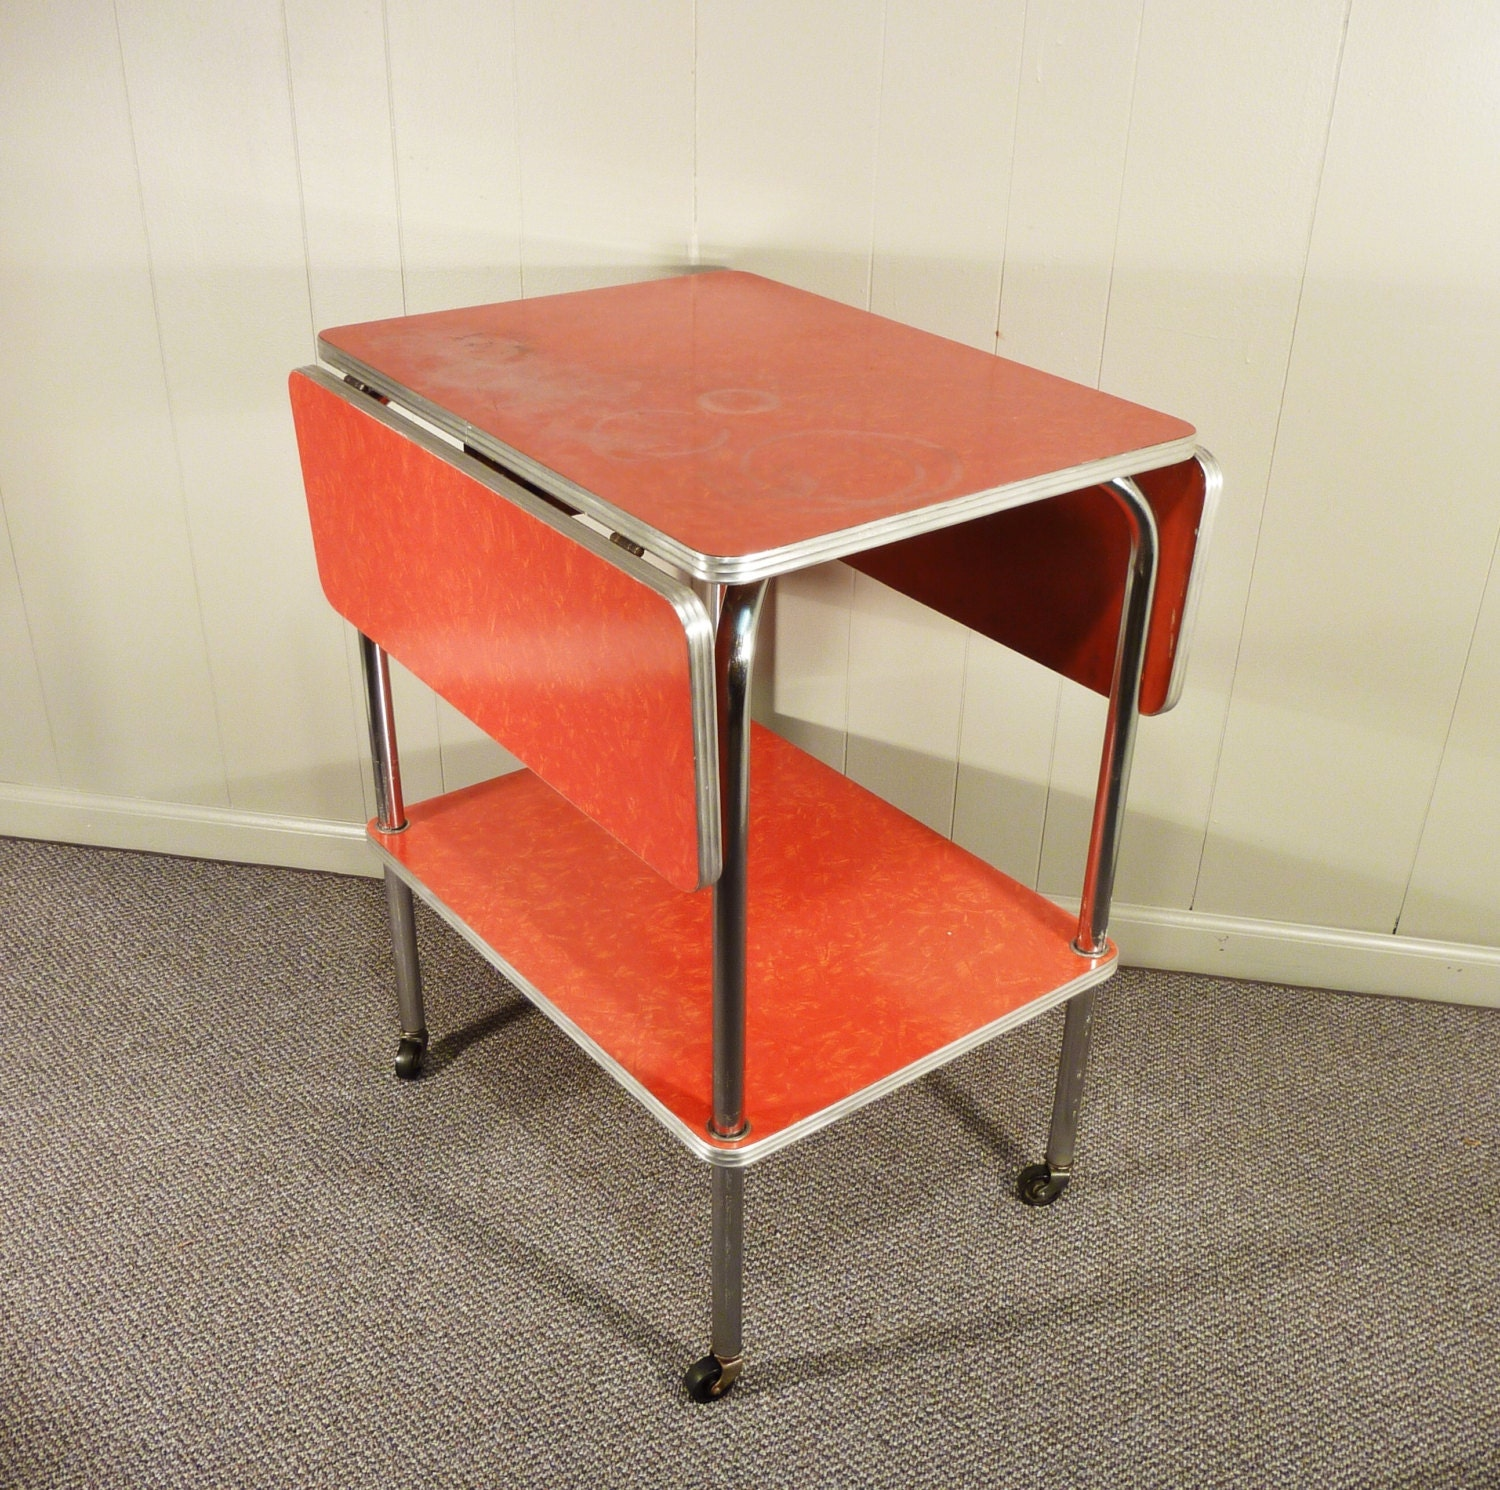 Cosco Chippy Red Metal Kitchen Cart Movable Painted Vintage: Red Formica 50s Kitchen Cart Movable Drop Leaf By Gillardgurl